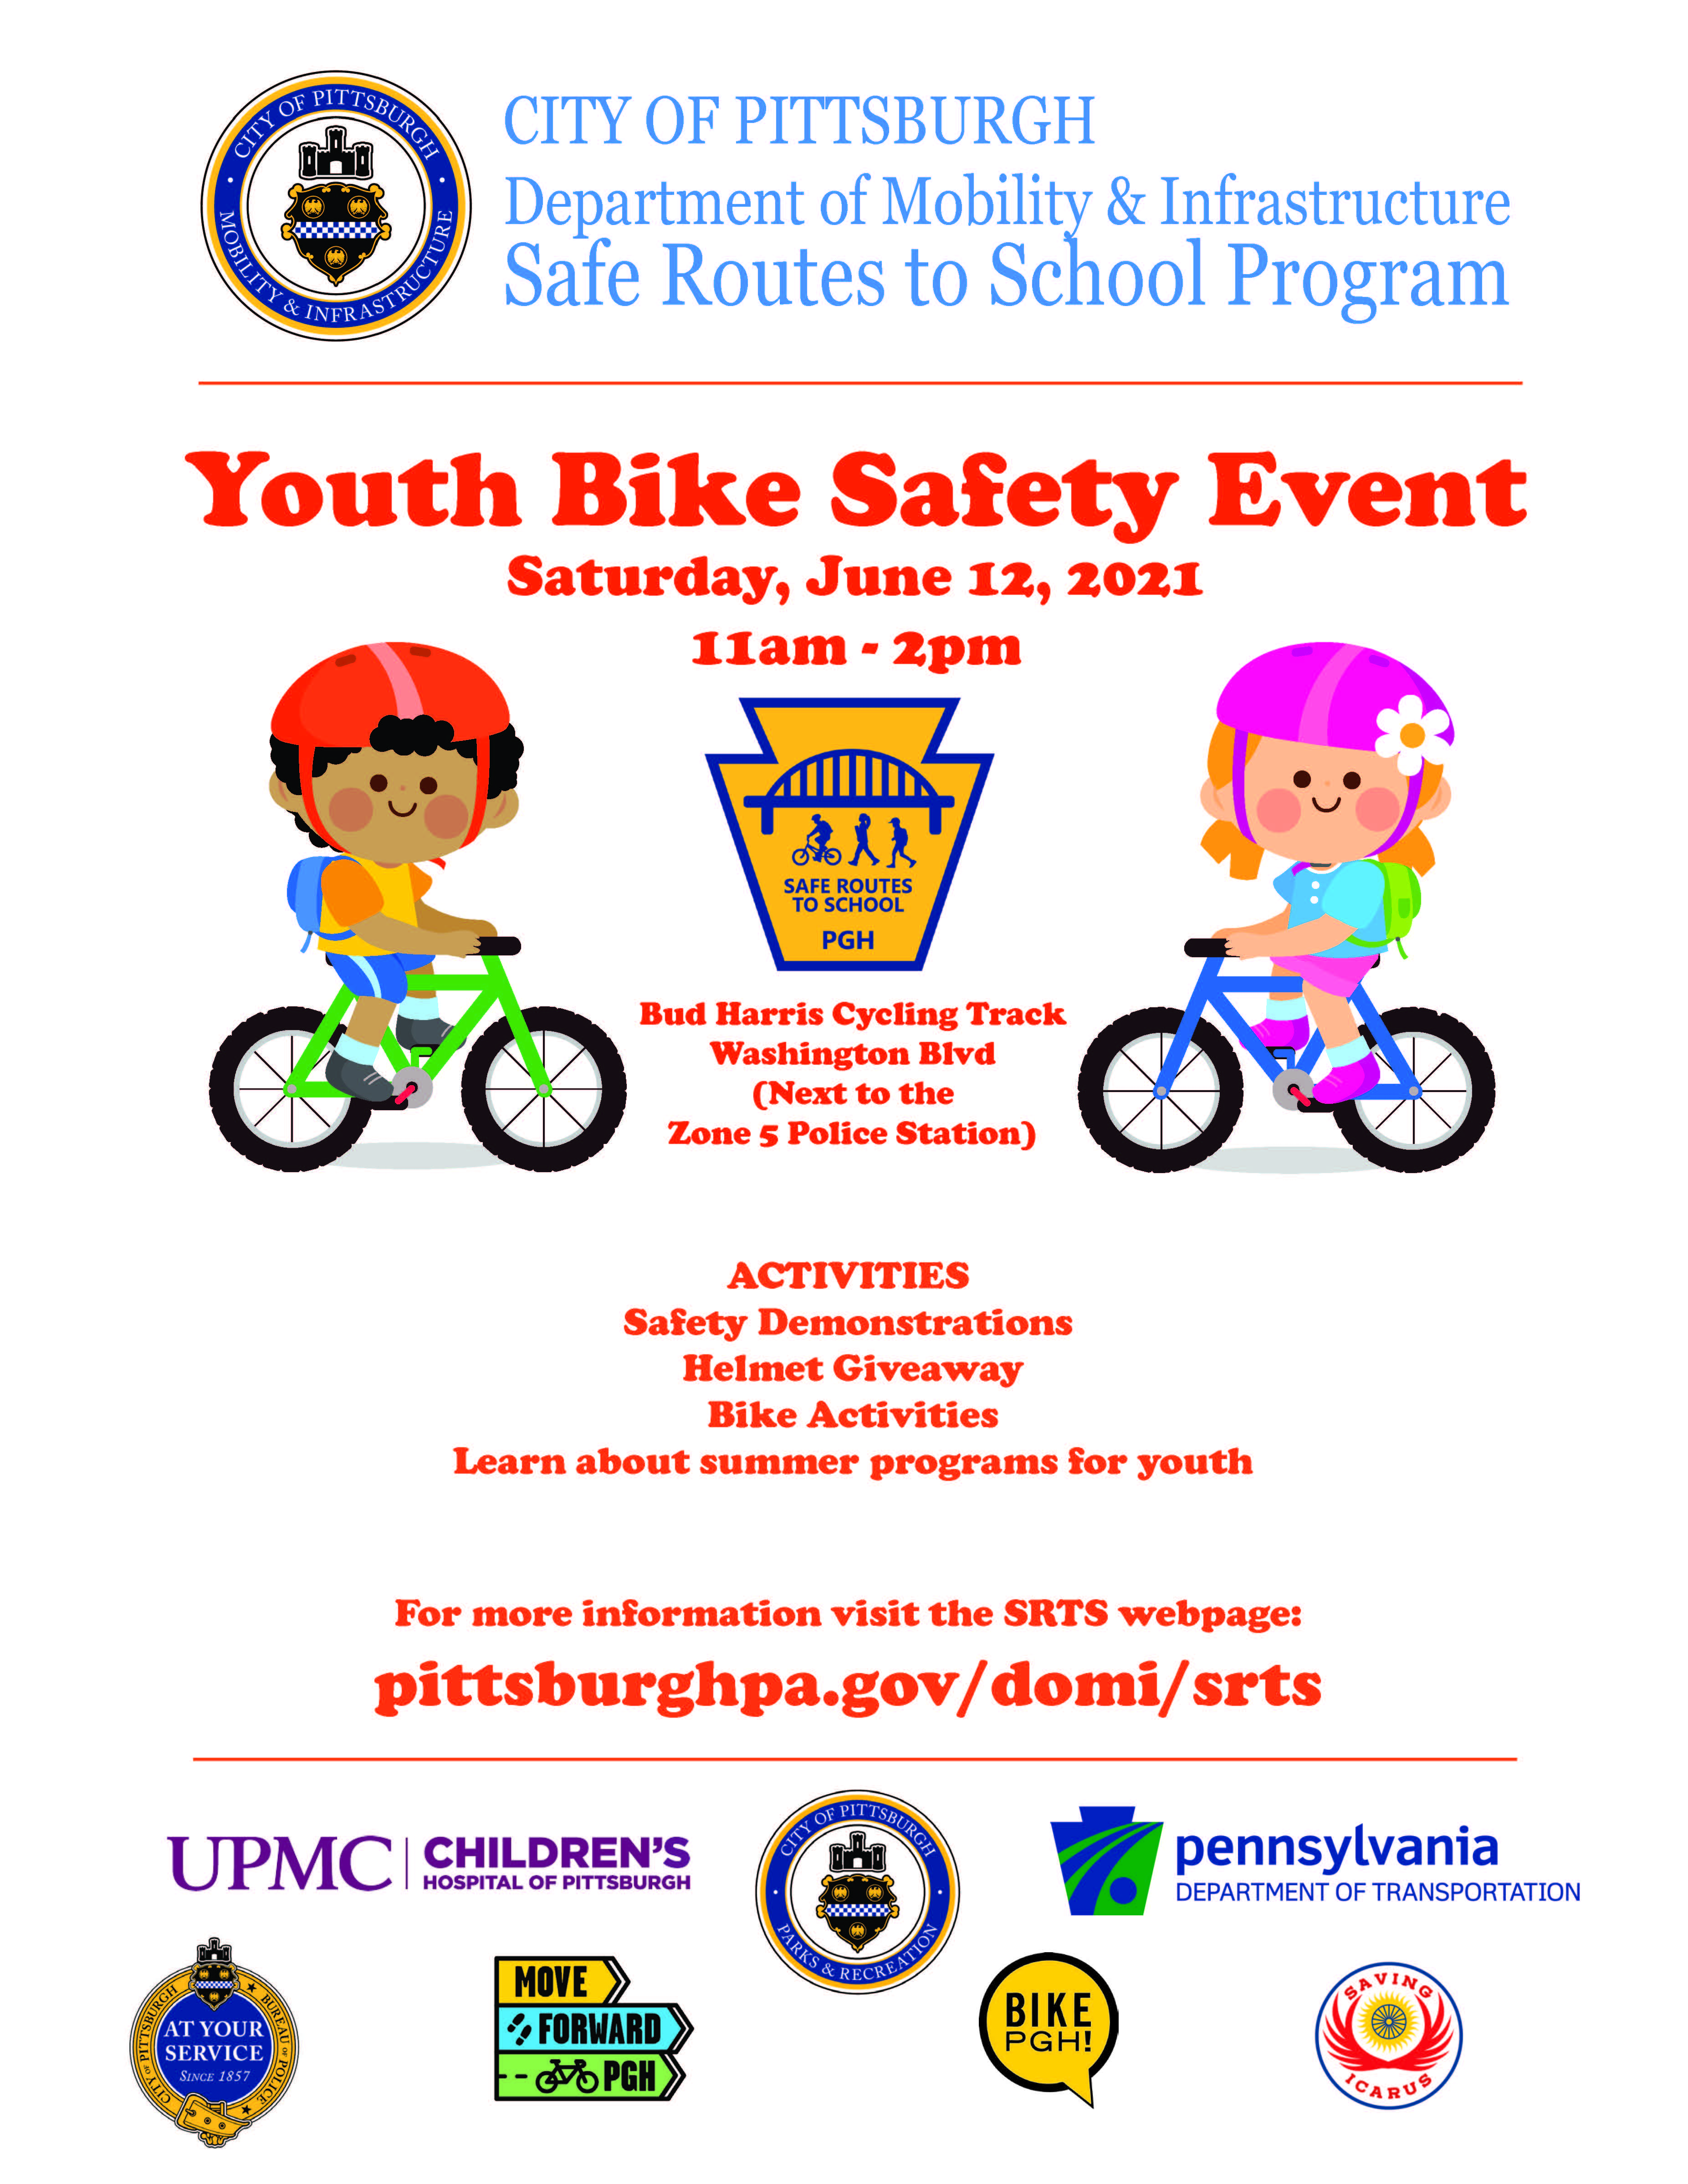 Flyer of information stating Youth Bike Safety Day on June 12, 2021 11 am - 2 pm at the Bud Harris Cycle Track on Washington Blvd (next to Zone 5 Police Station)